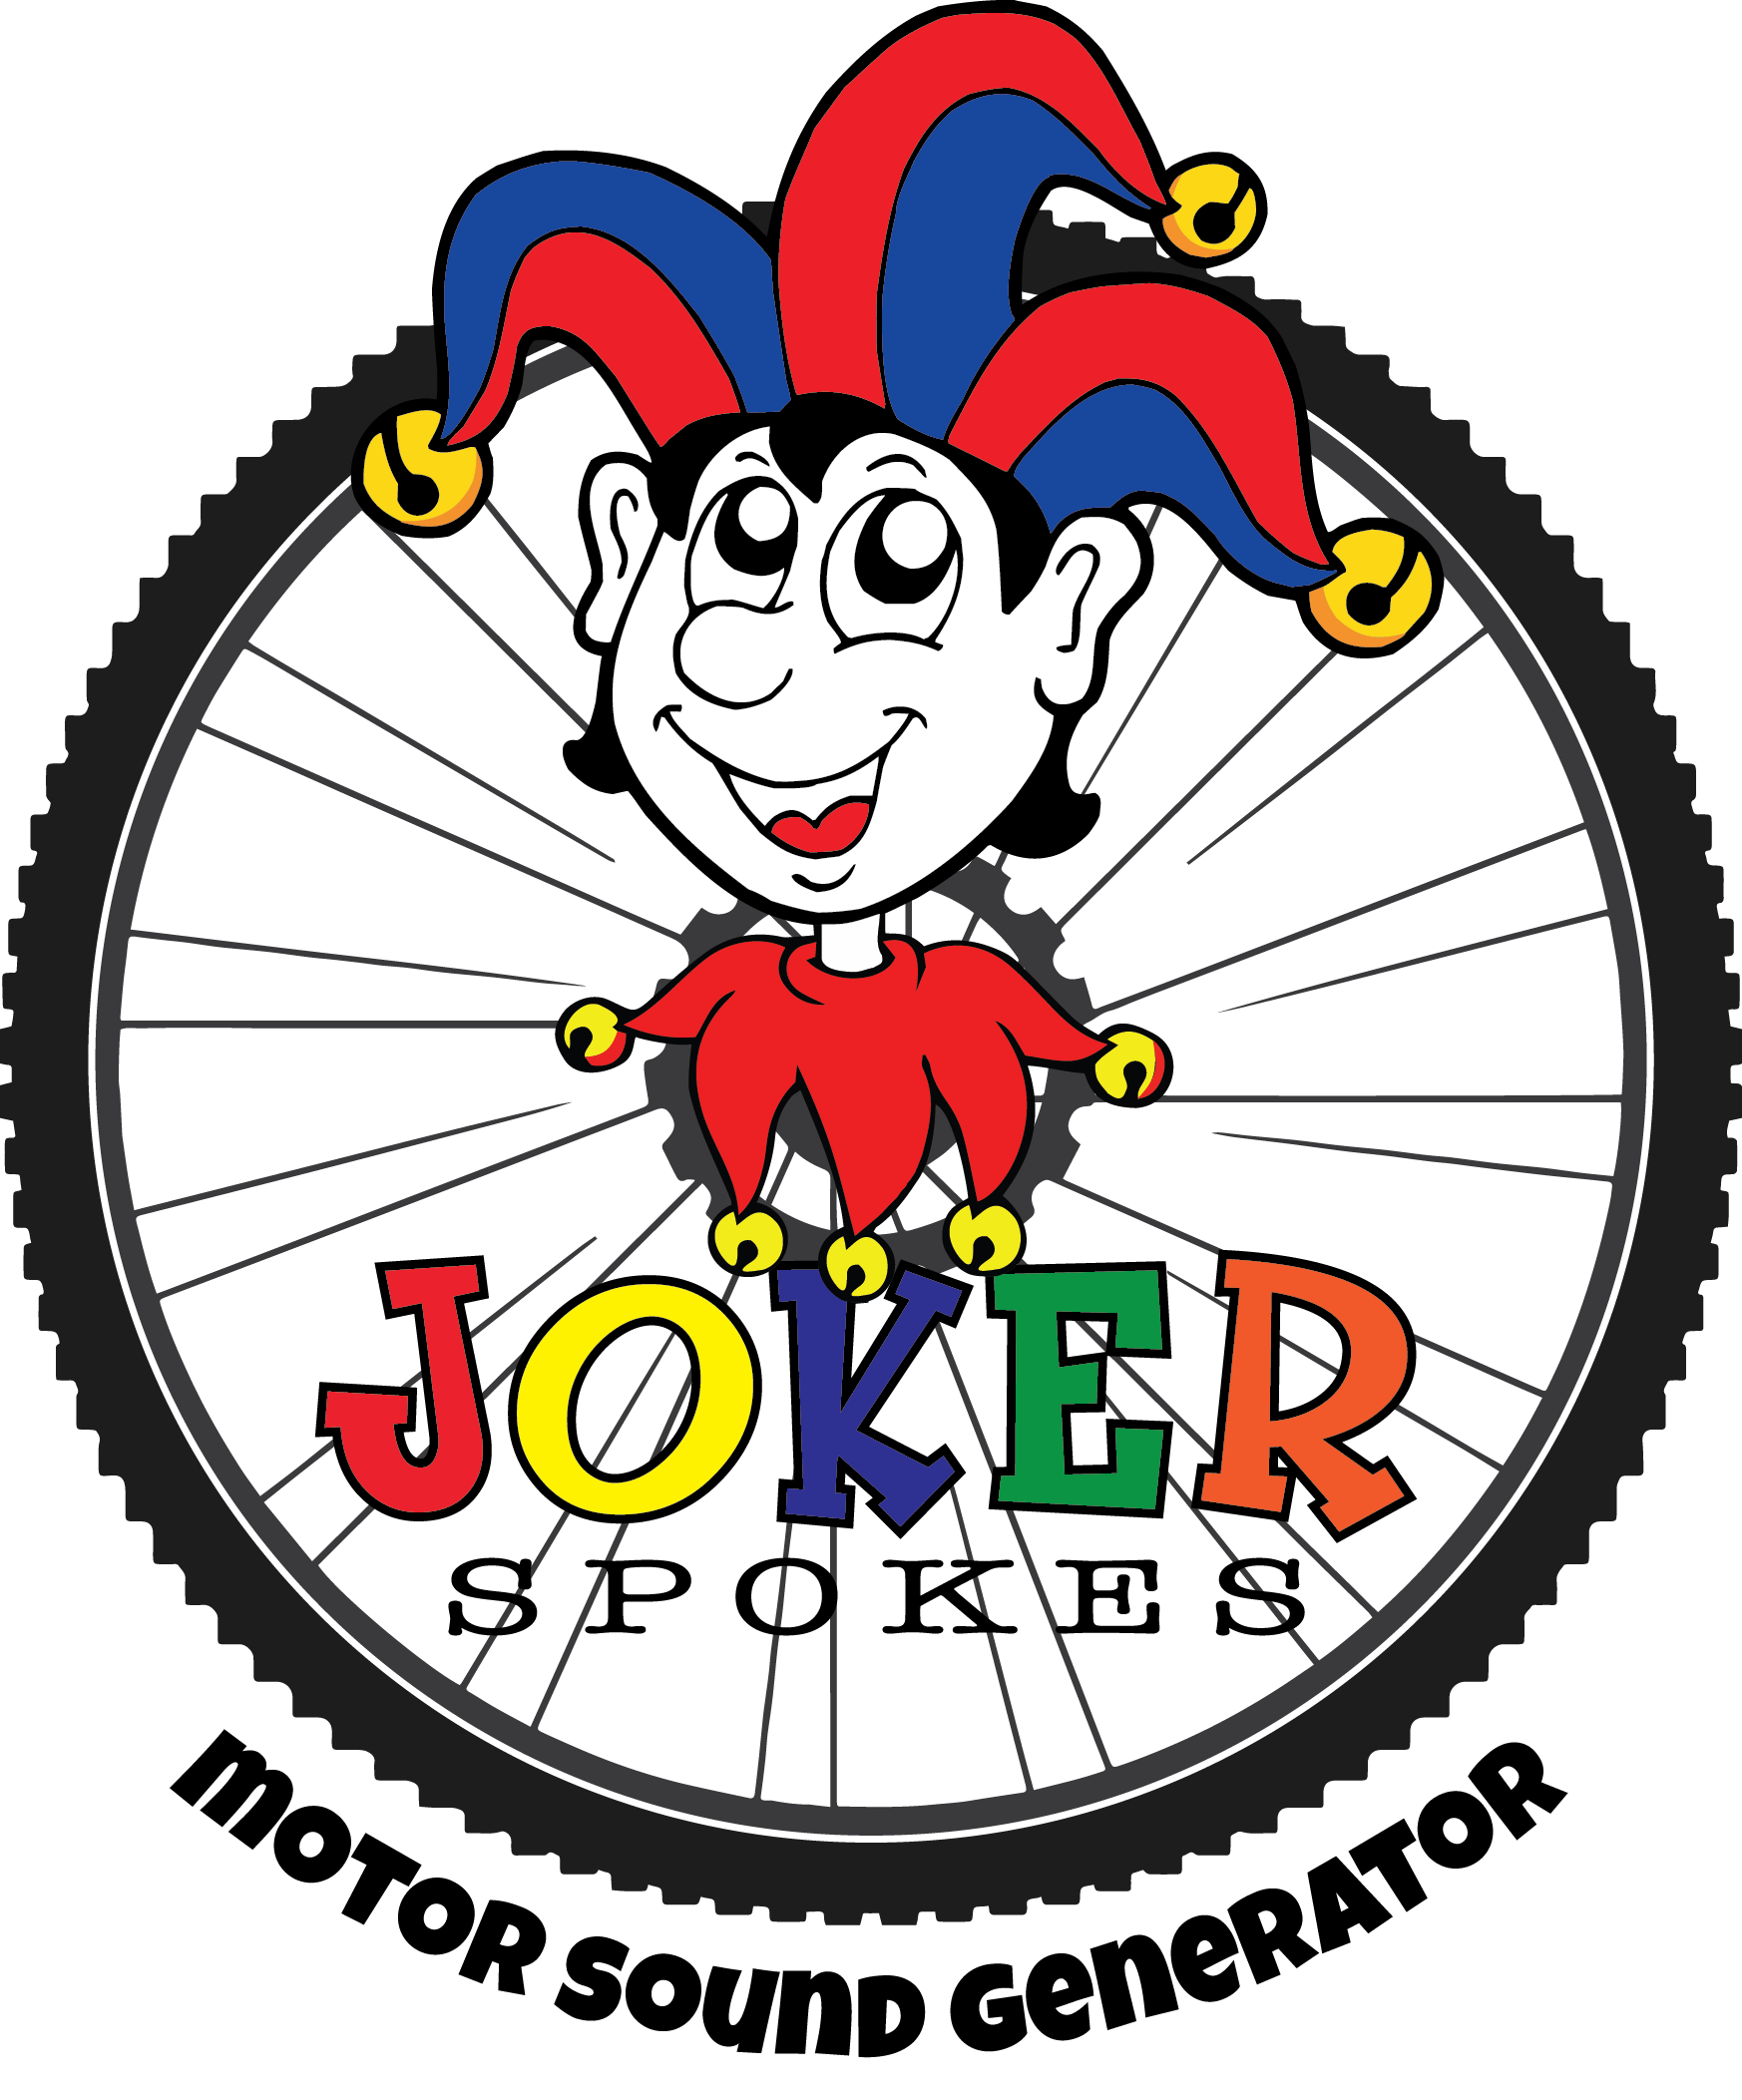 Joker Spokes Logo